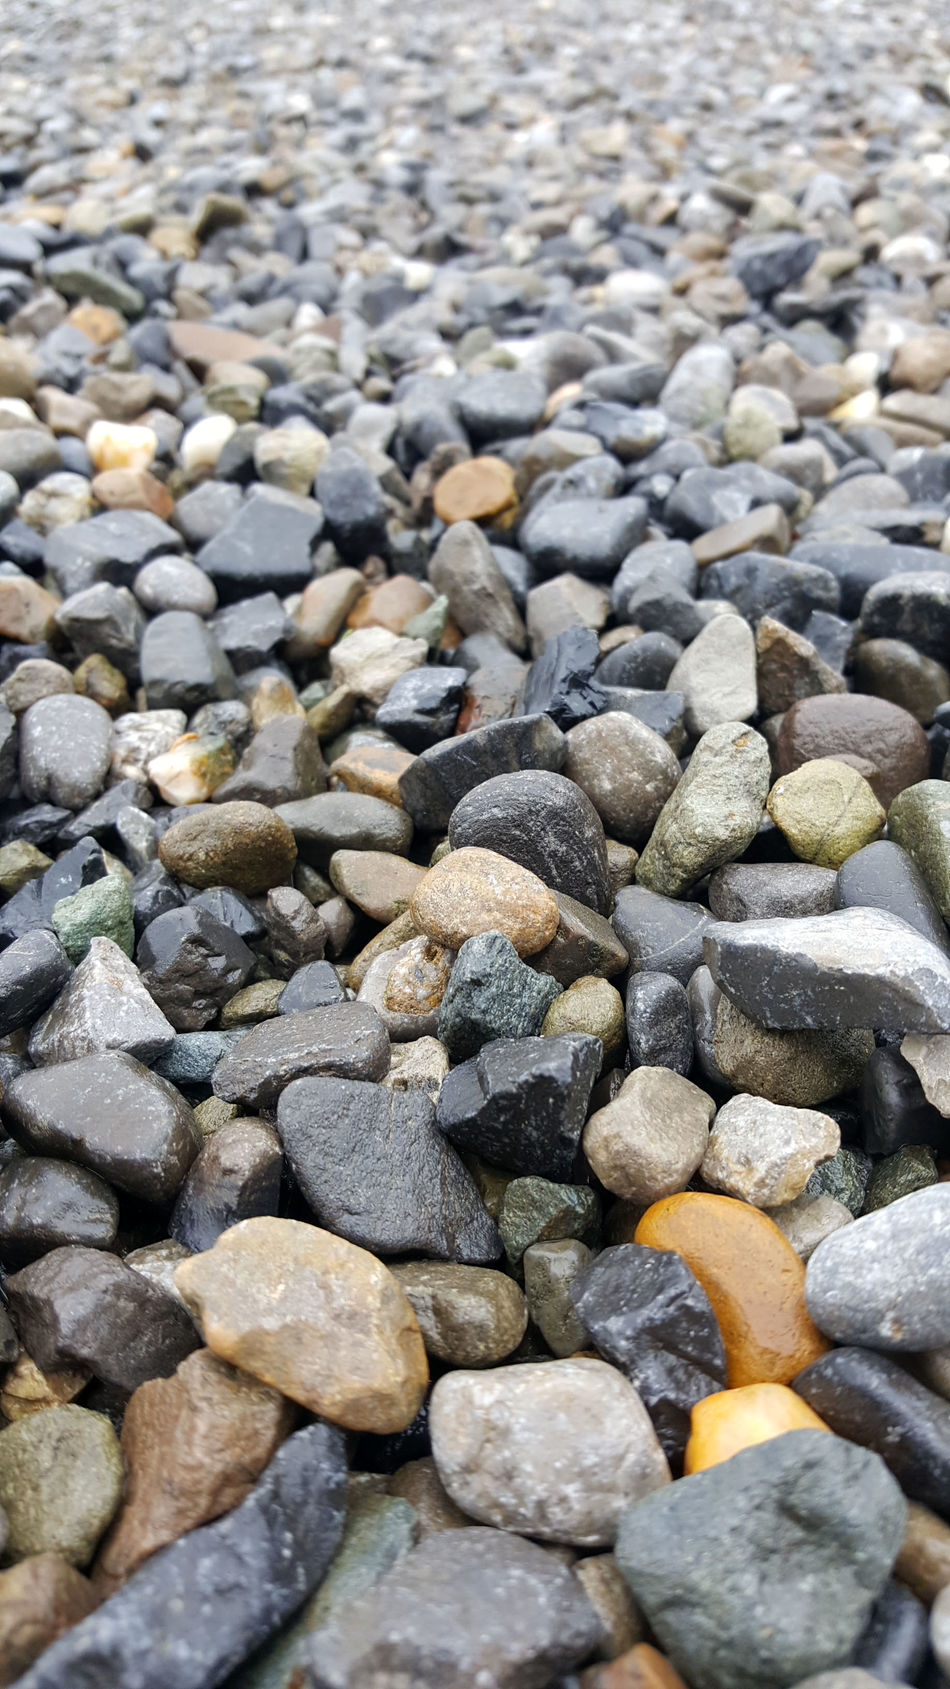 Backgrounds Close-up Full Frame Large Group Of Objects Outdoors Pebble Stone - Object Textured